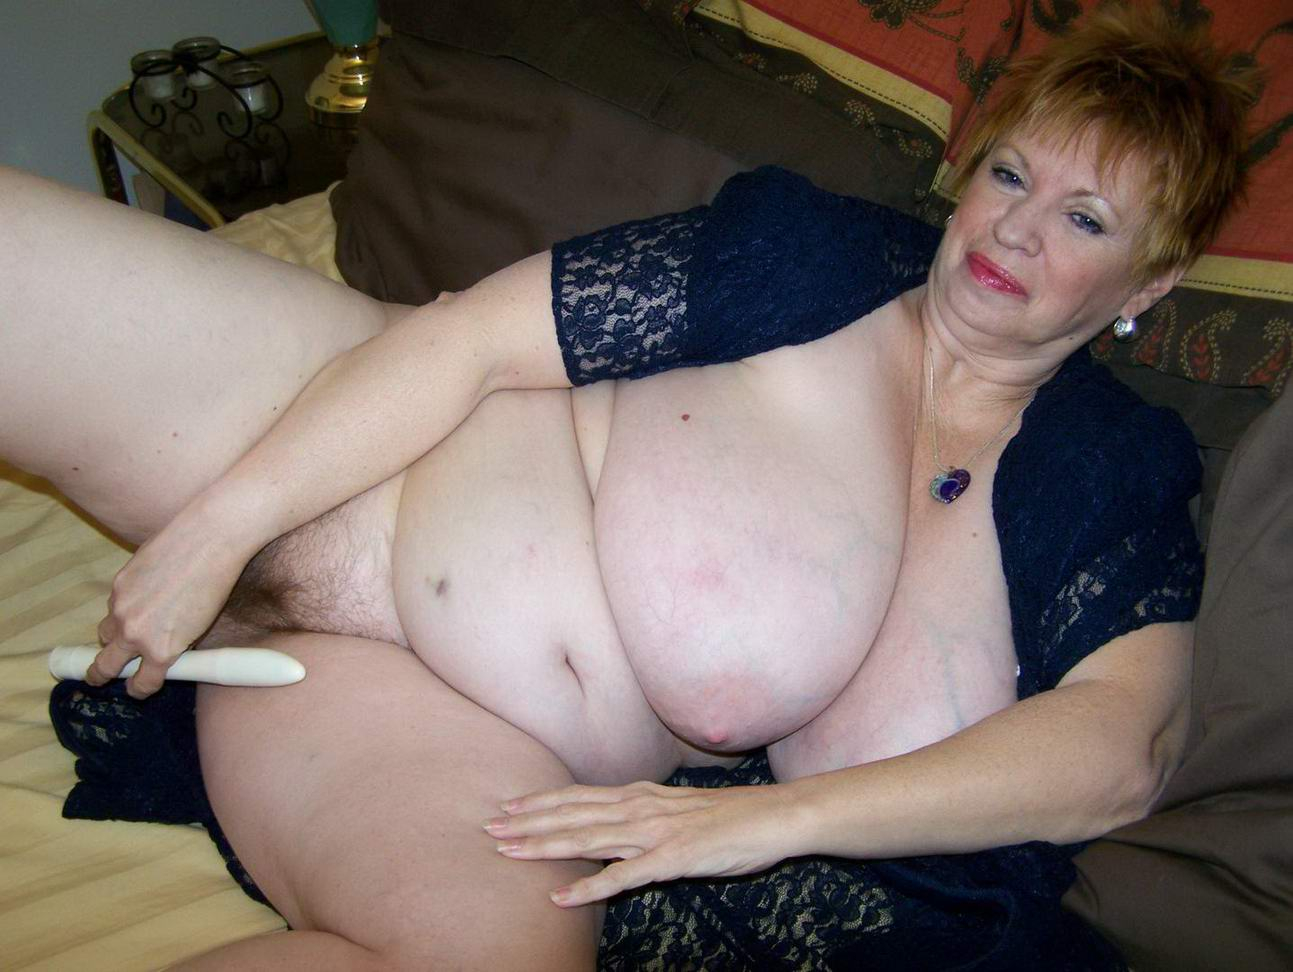 hookers nl massage moeders willen sex